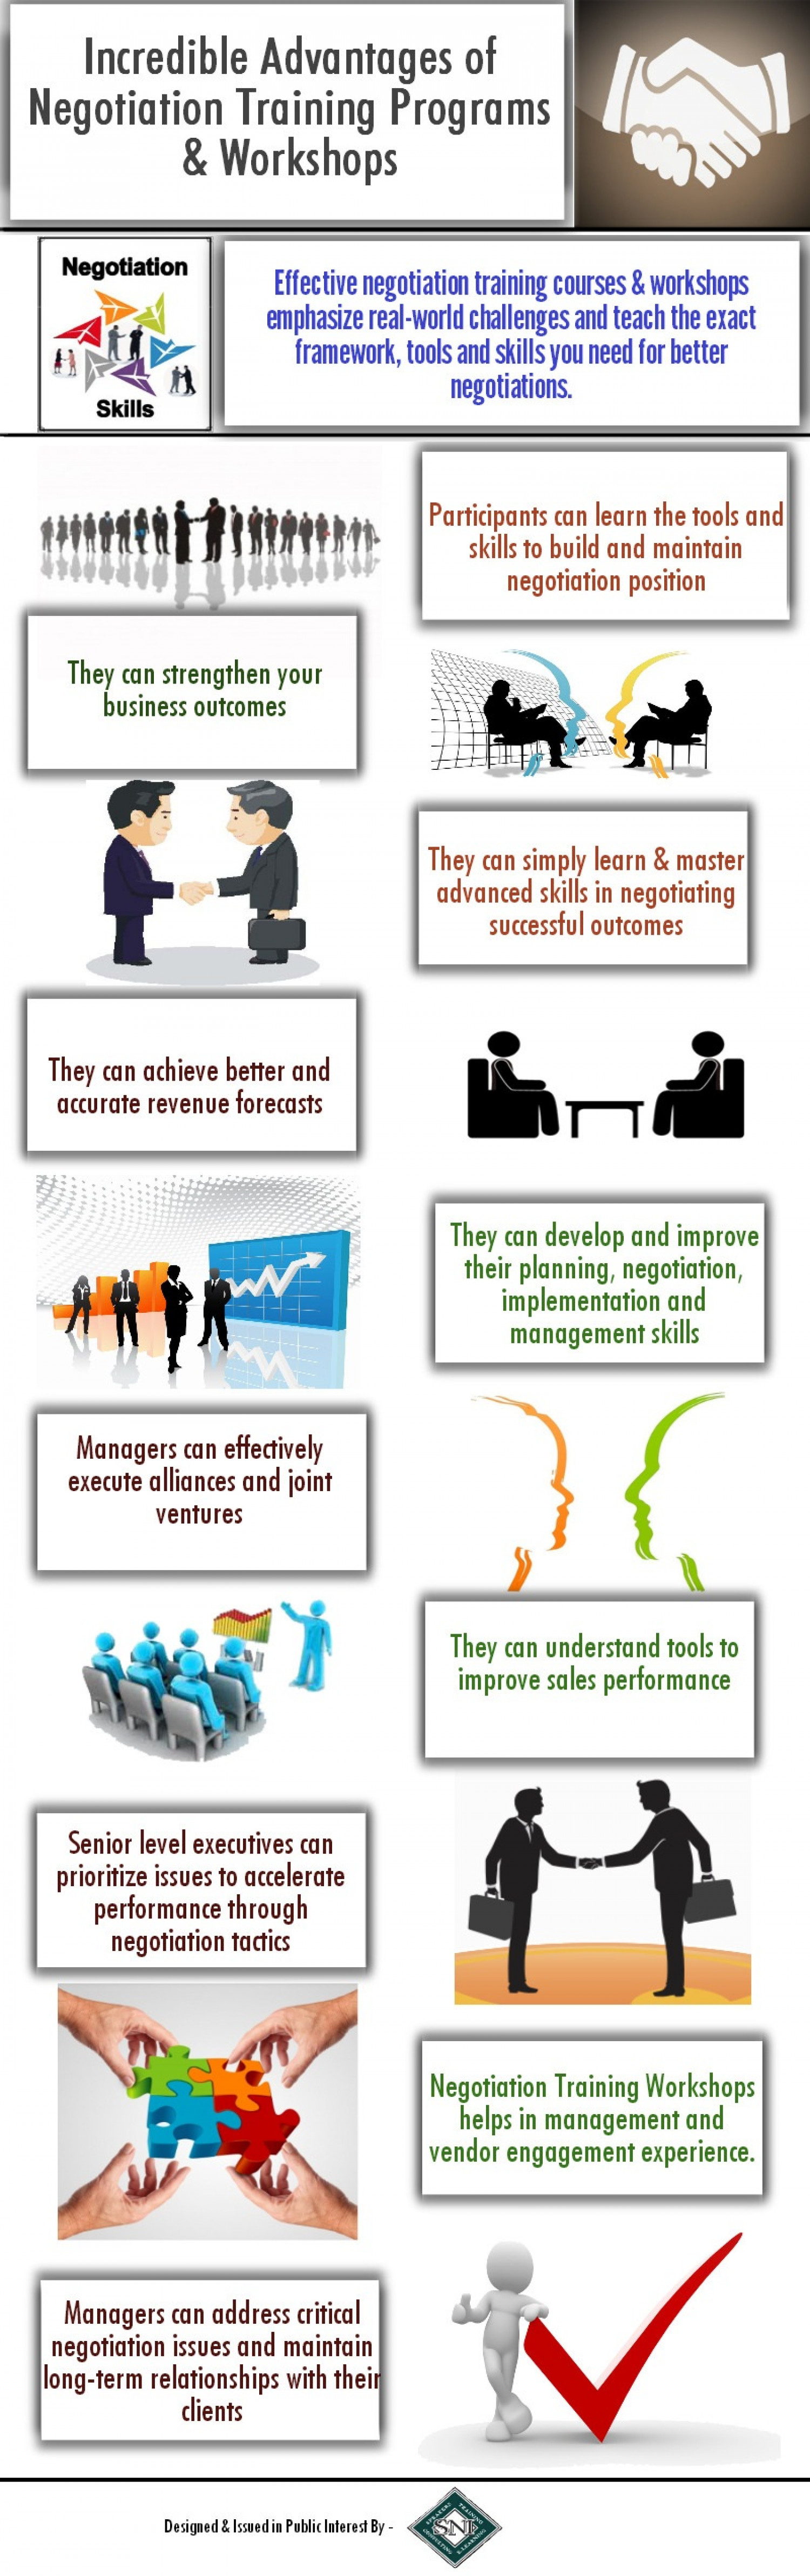 Incredible Advantages of Negotiation Training Programs & Workshops Infographic